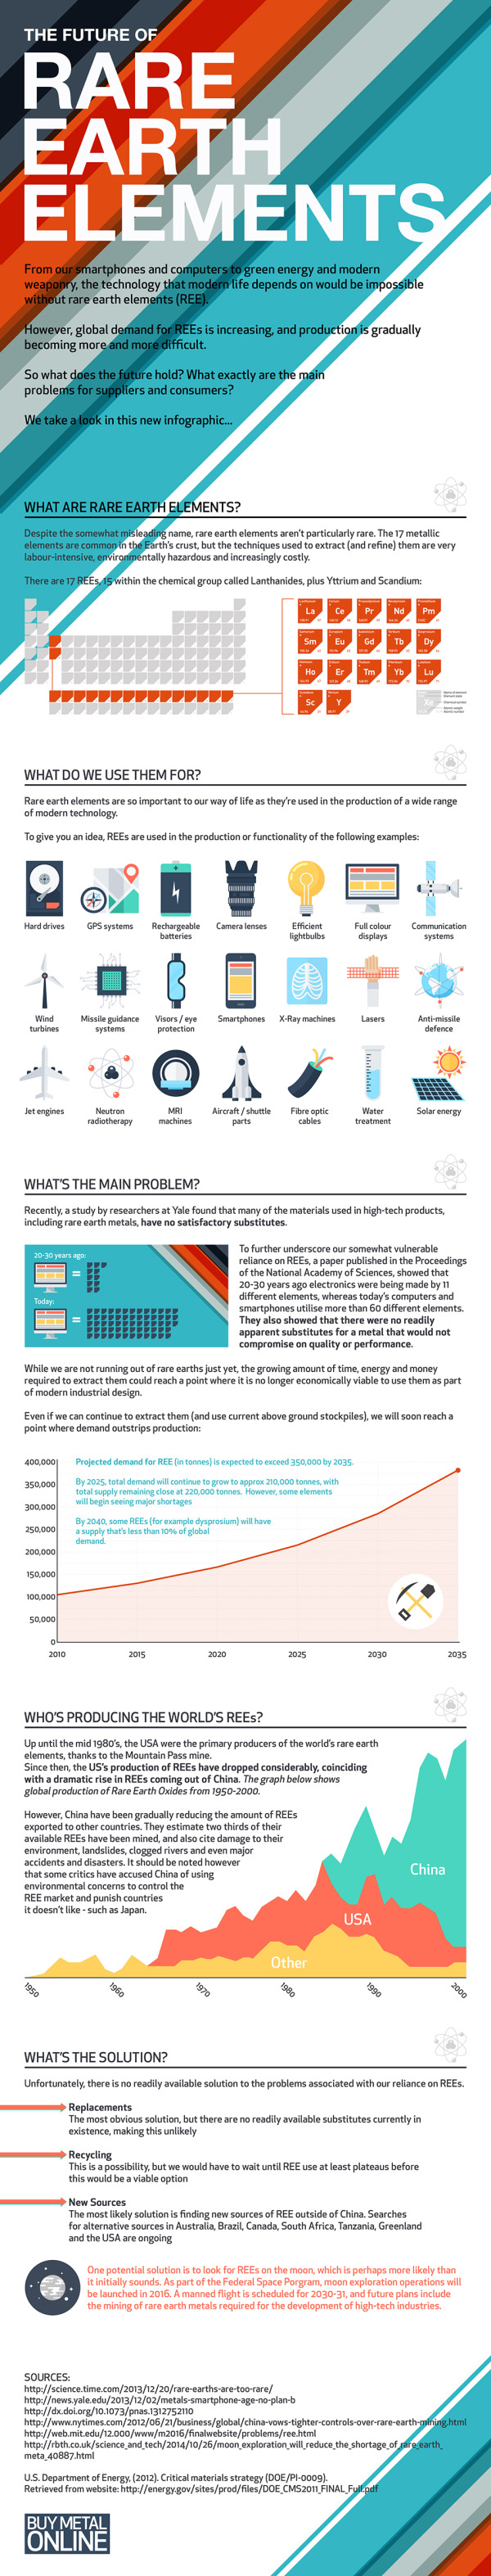 The Future of Rare Earth Elements infographic